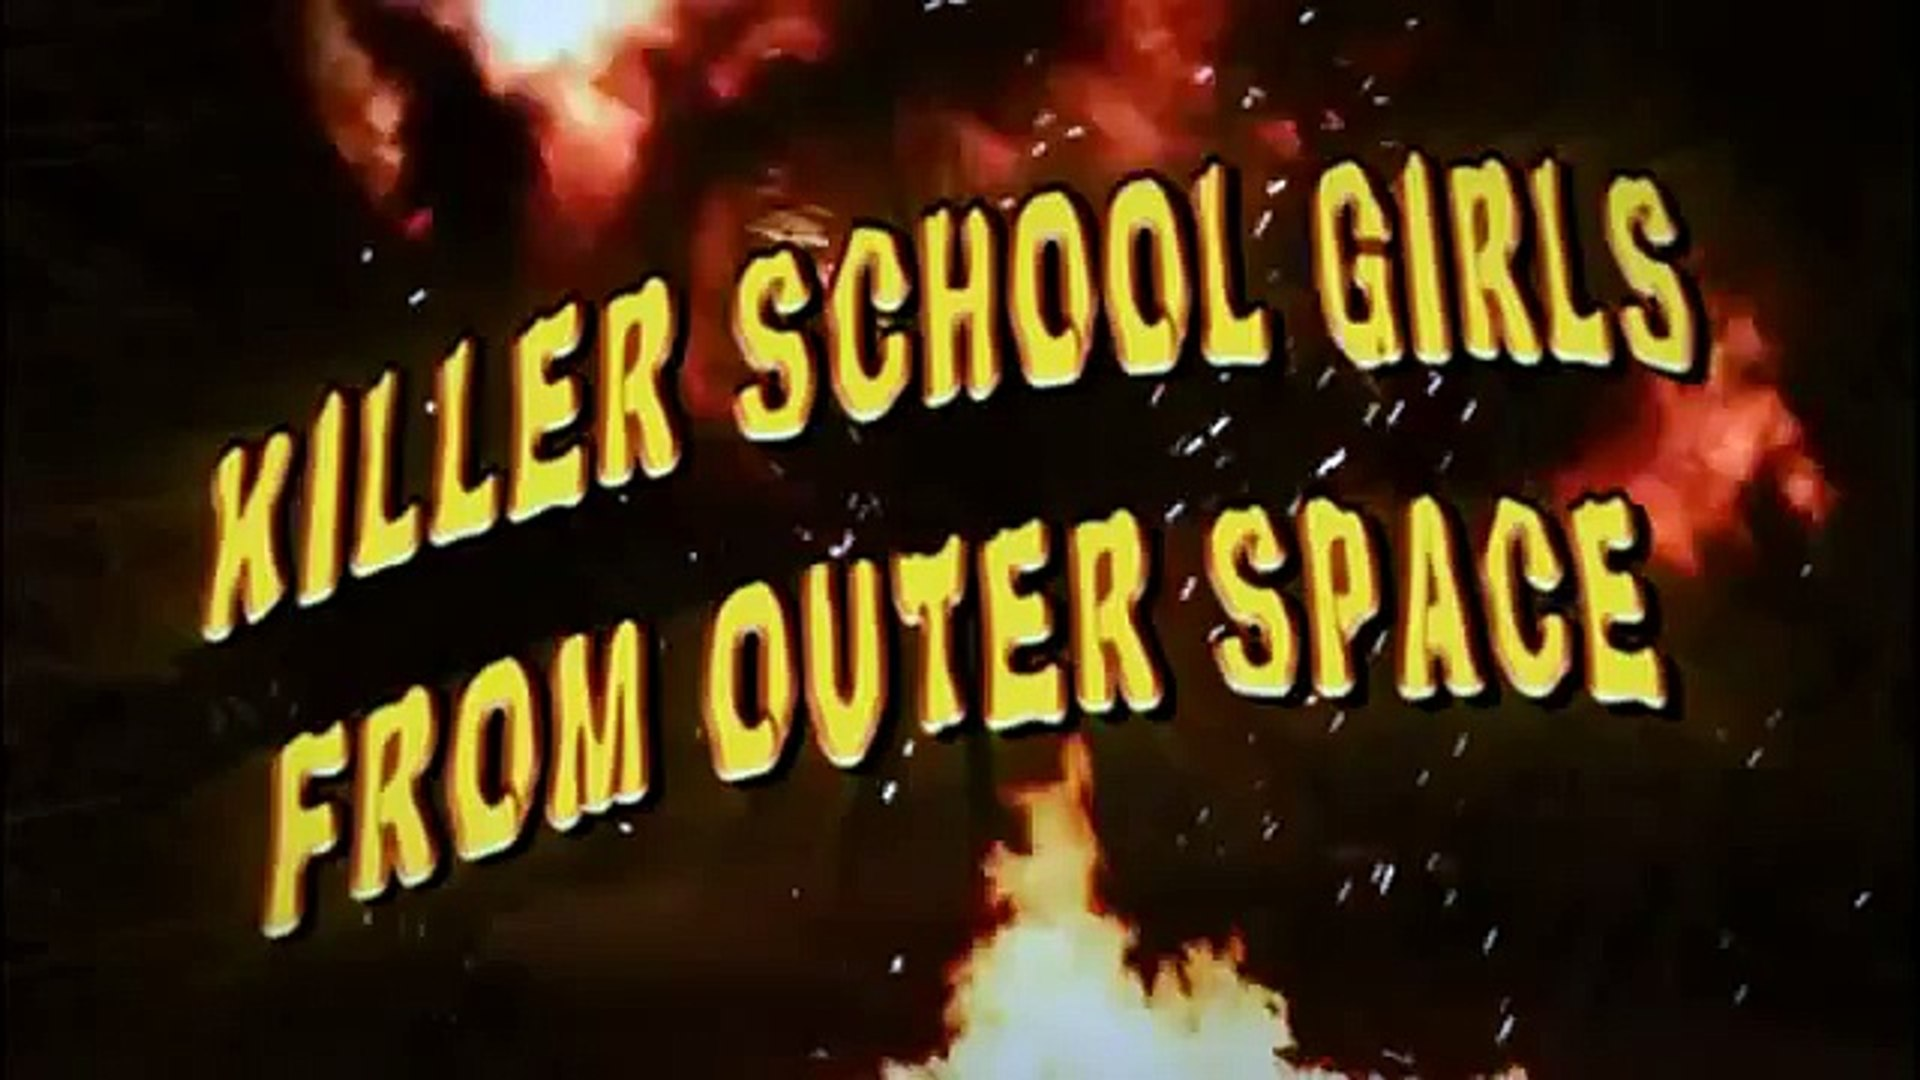 Killer School Girls from Outer Space (2011) - Trailer